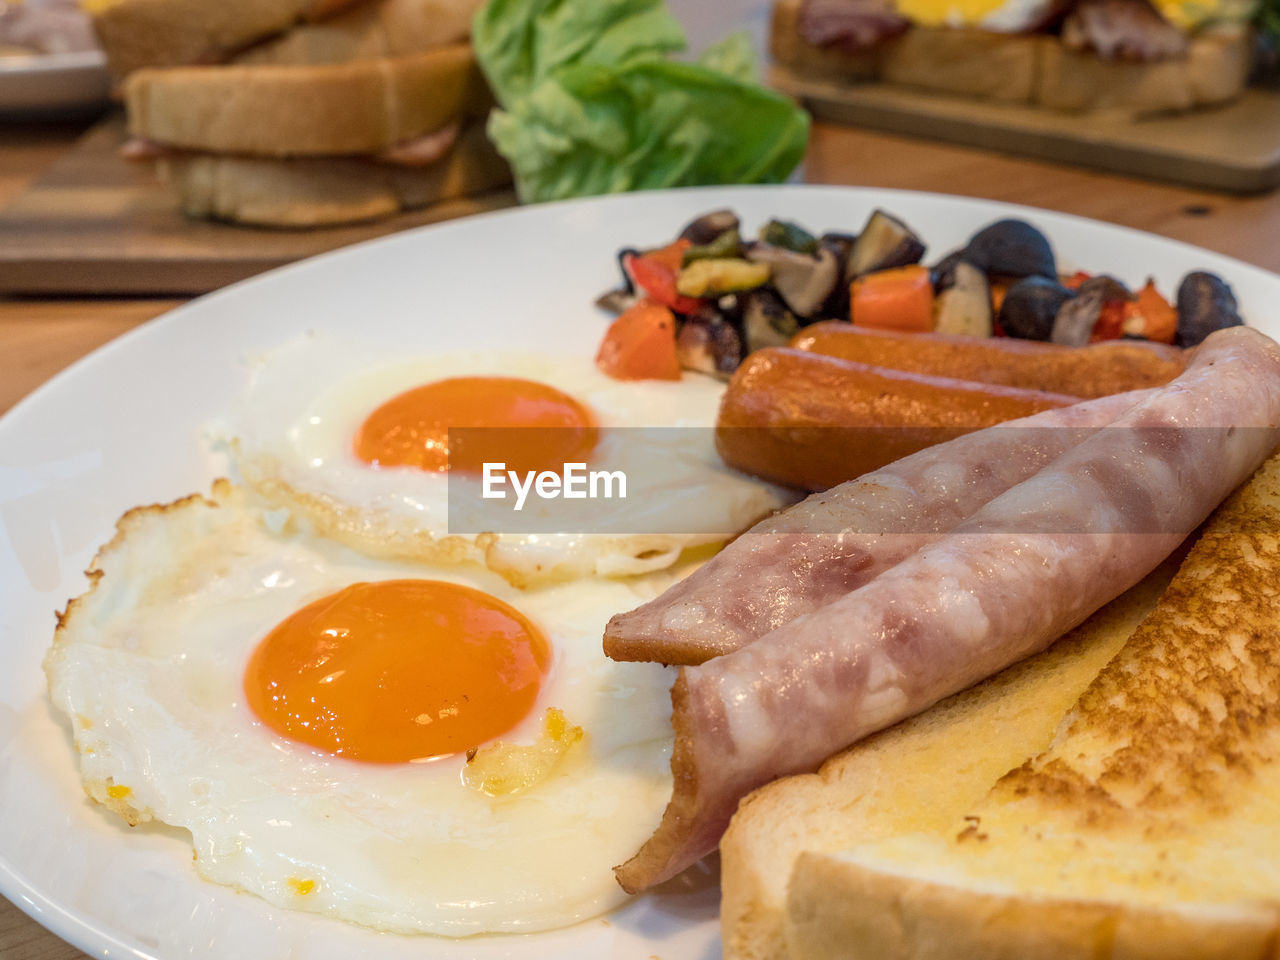 food, food and drink, egg, fried egg, ready-to-eat, meat, healthy eating, close-up, freshness, table, fried, indoors, plate, still life, meal, breakfast, wellbeing, pork, vegetable, processed meat, no people, egg yolk, sunny side up